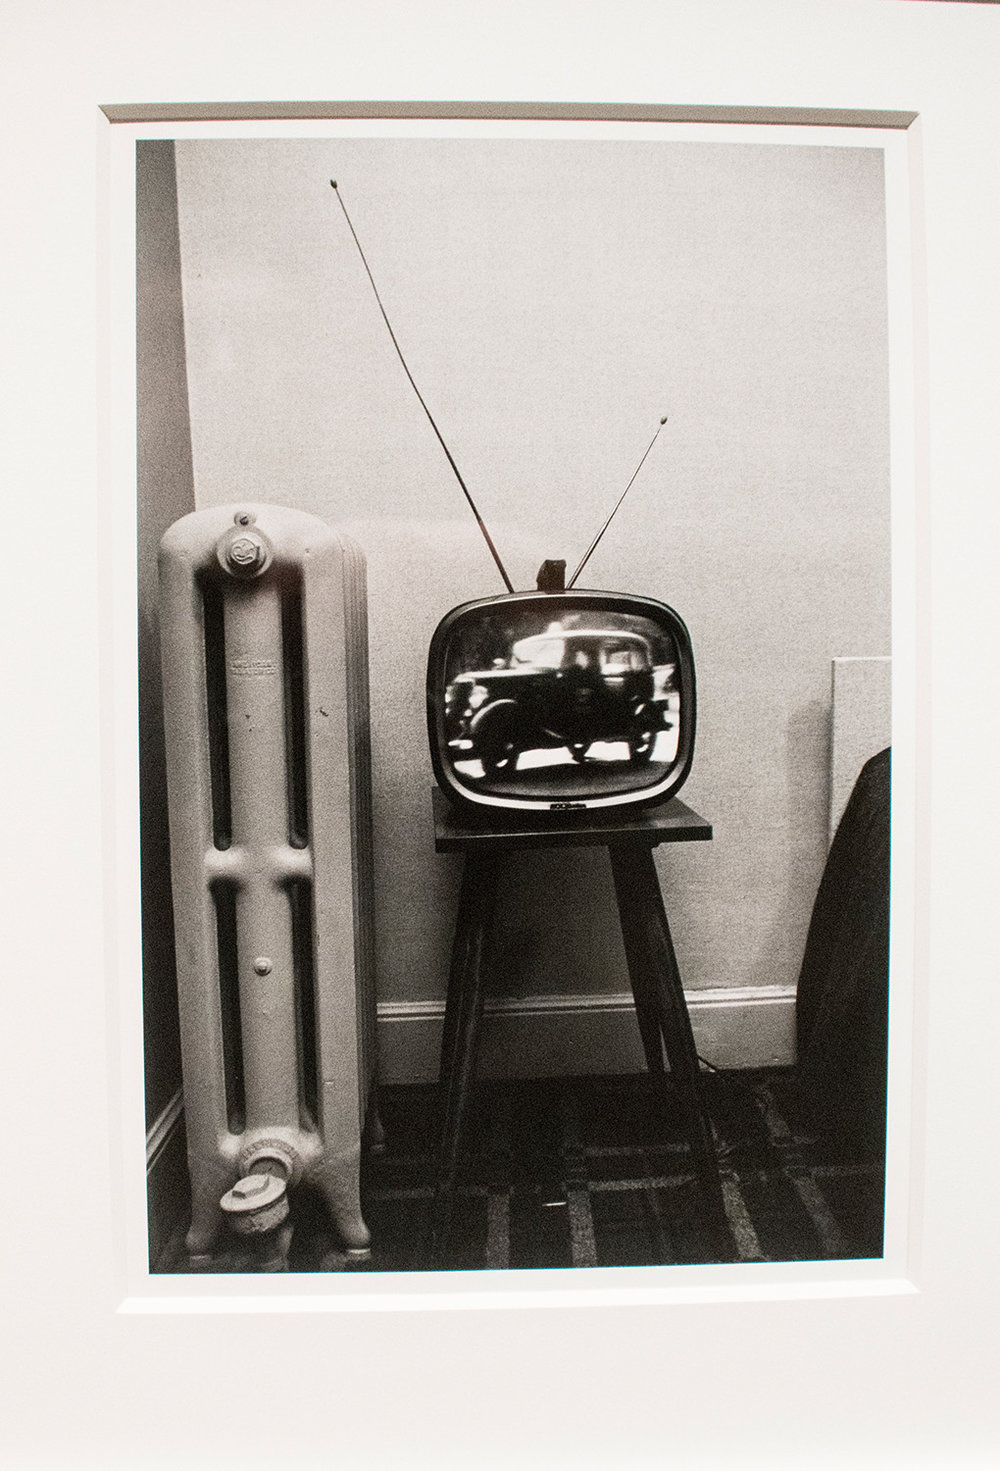 Lee Friedlander - The Little Screens 1961-70